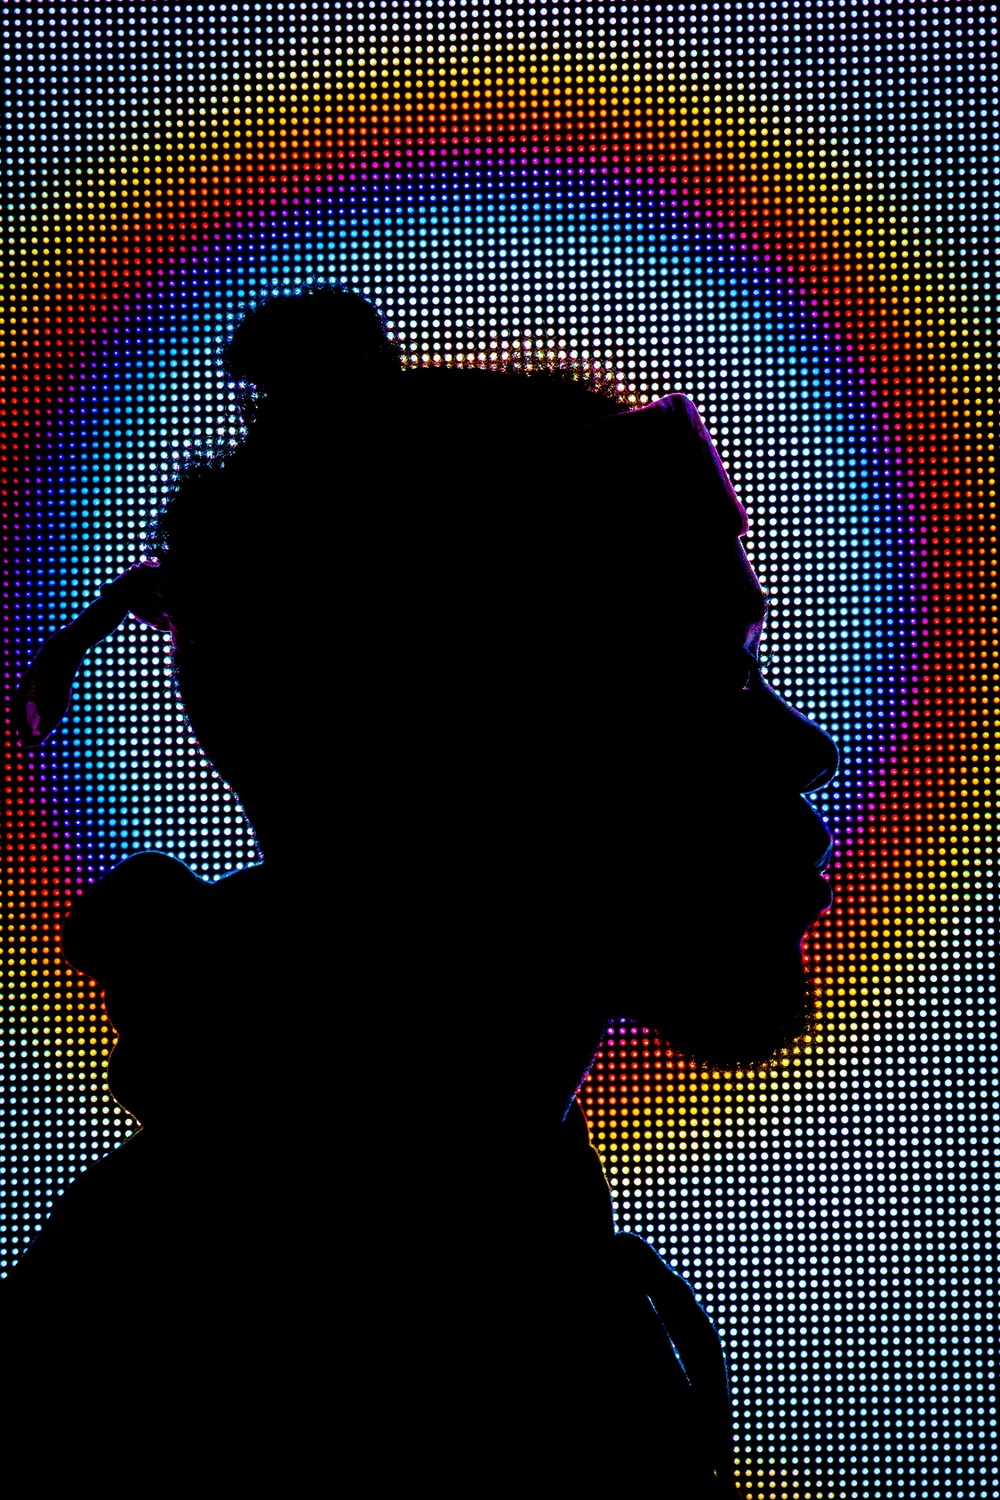 silhouette of man facing right